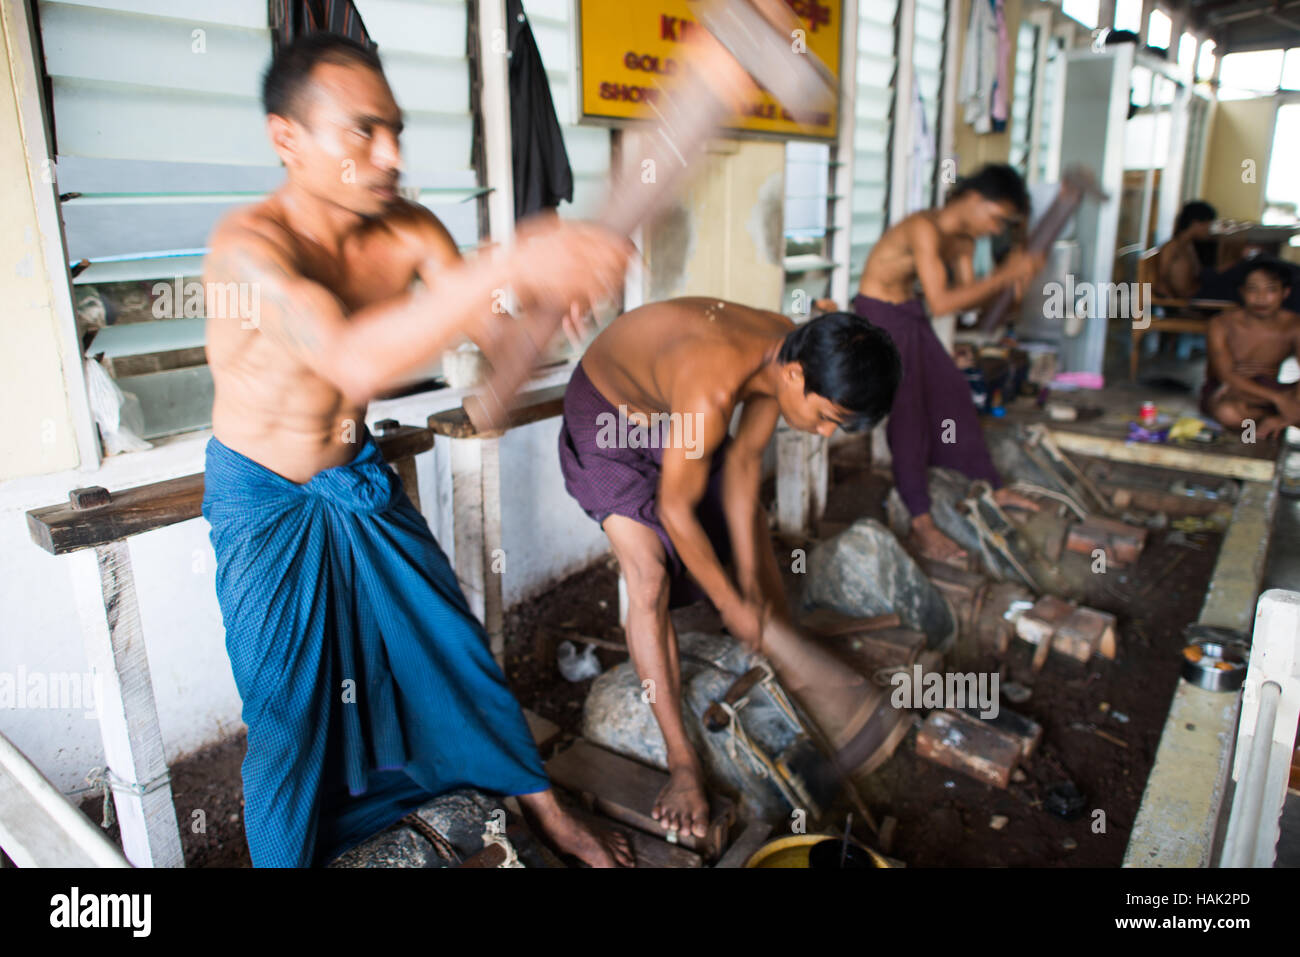 MANDALAY, Myanmar - MANDALAY, Myanmar - The manual process of pounding and packaging ultra-thin sheets of gold leaf - Stock Image